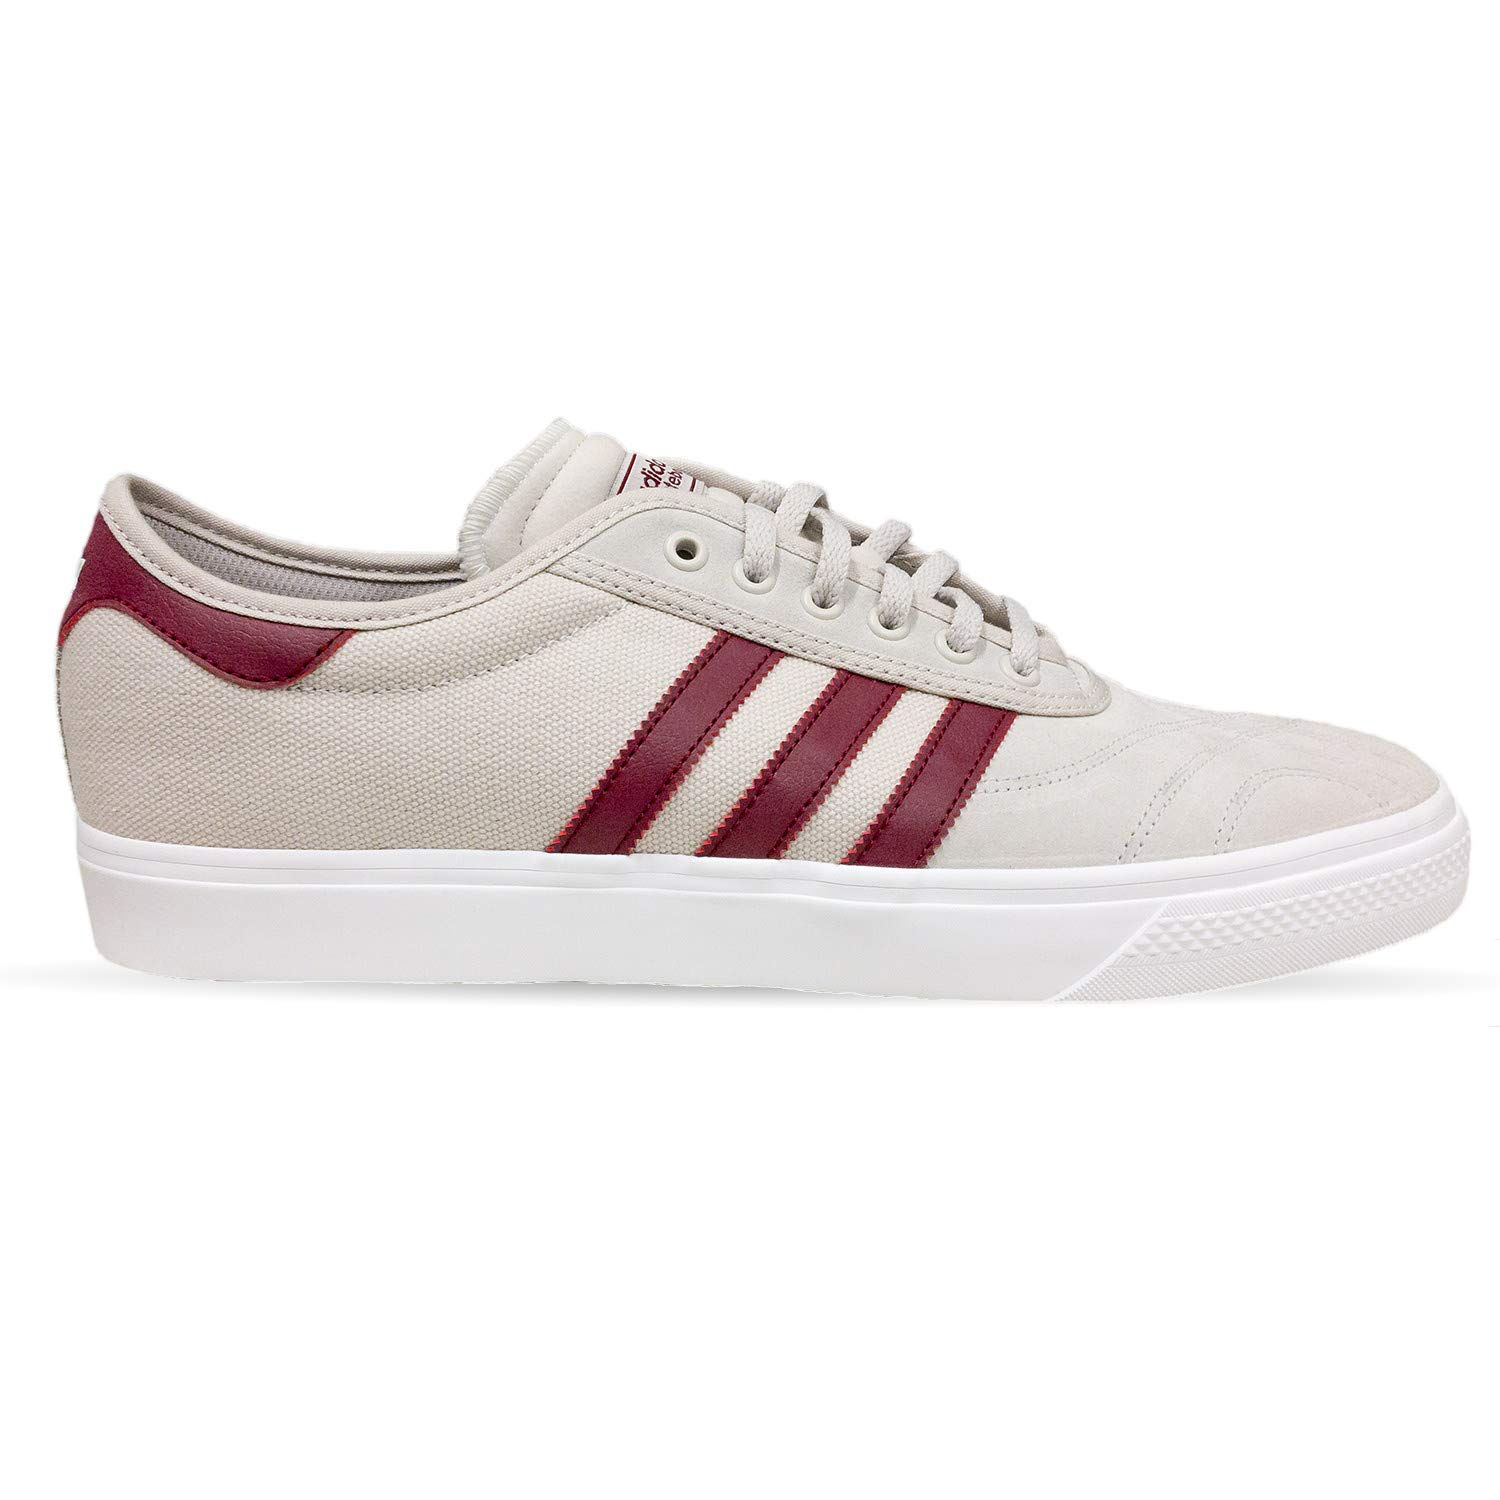 0f4f11285f052 Galleon - Adidas Skateboarding Men s Adi-Ease Premiere Crystal White  Collegiate Burgundy White 9.5 D US D (M)